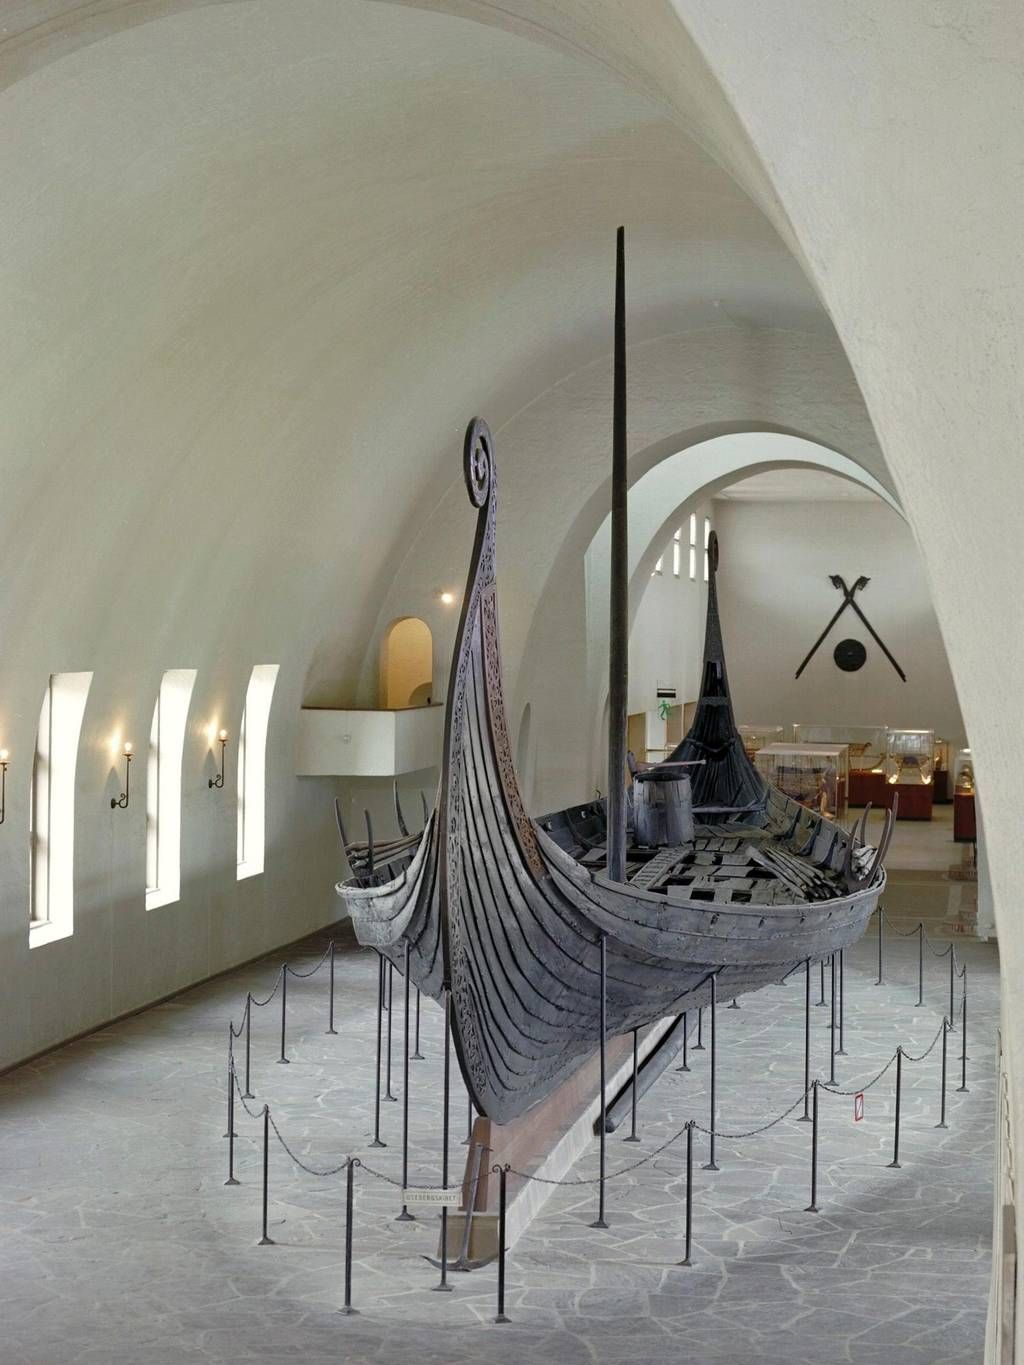 The Vikings - The Oseberg ship at the Museum of Cultural History in Oslo - Eirik Irgens Johnsen